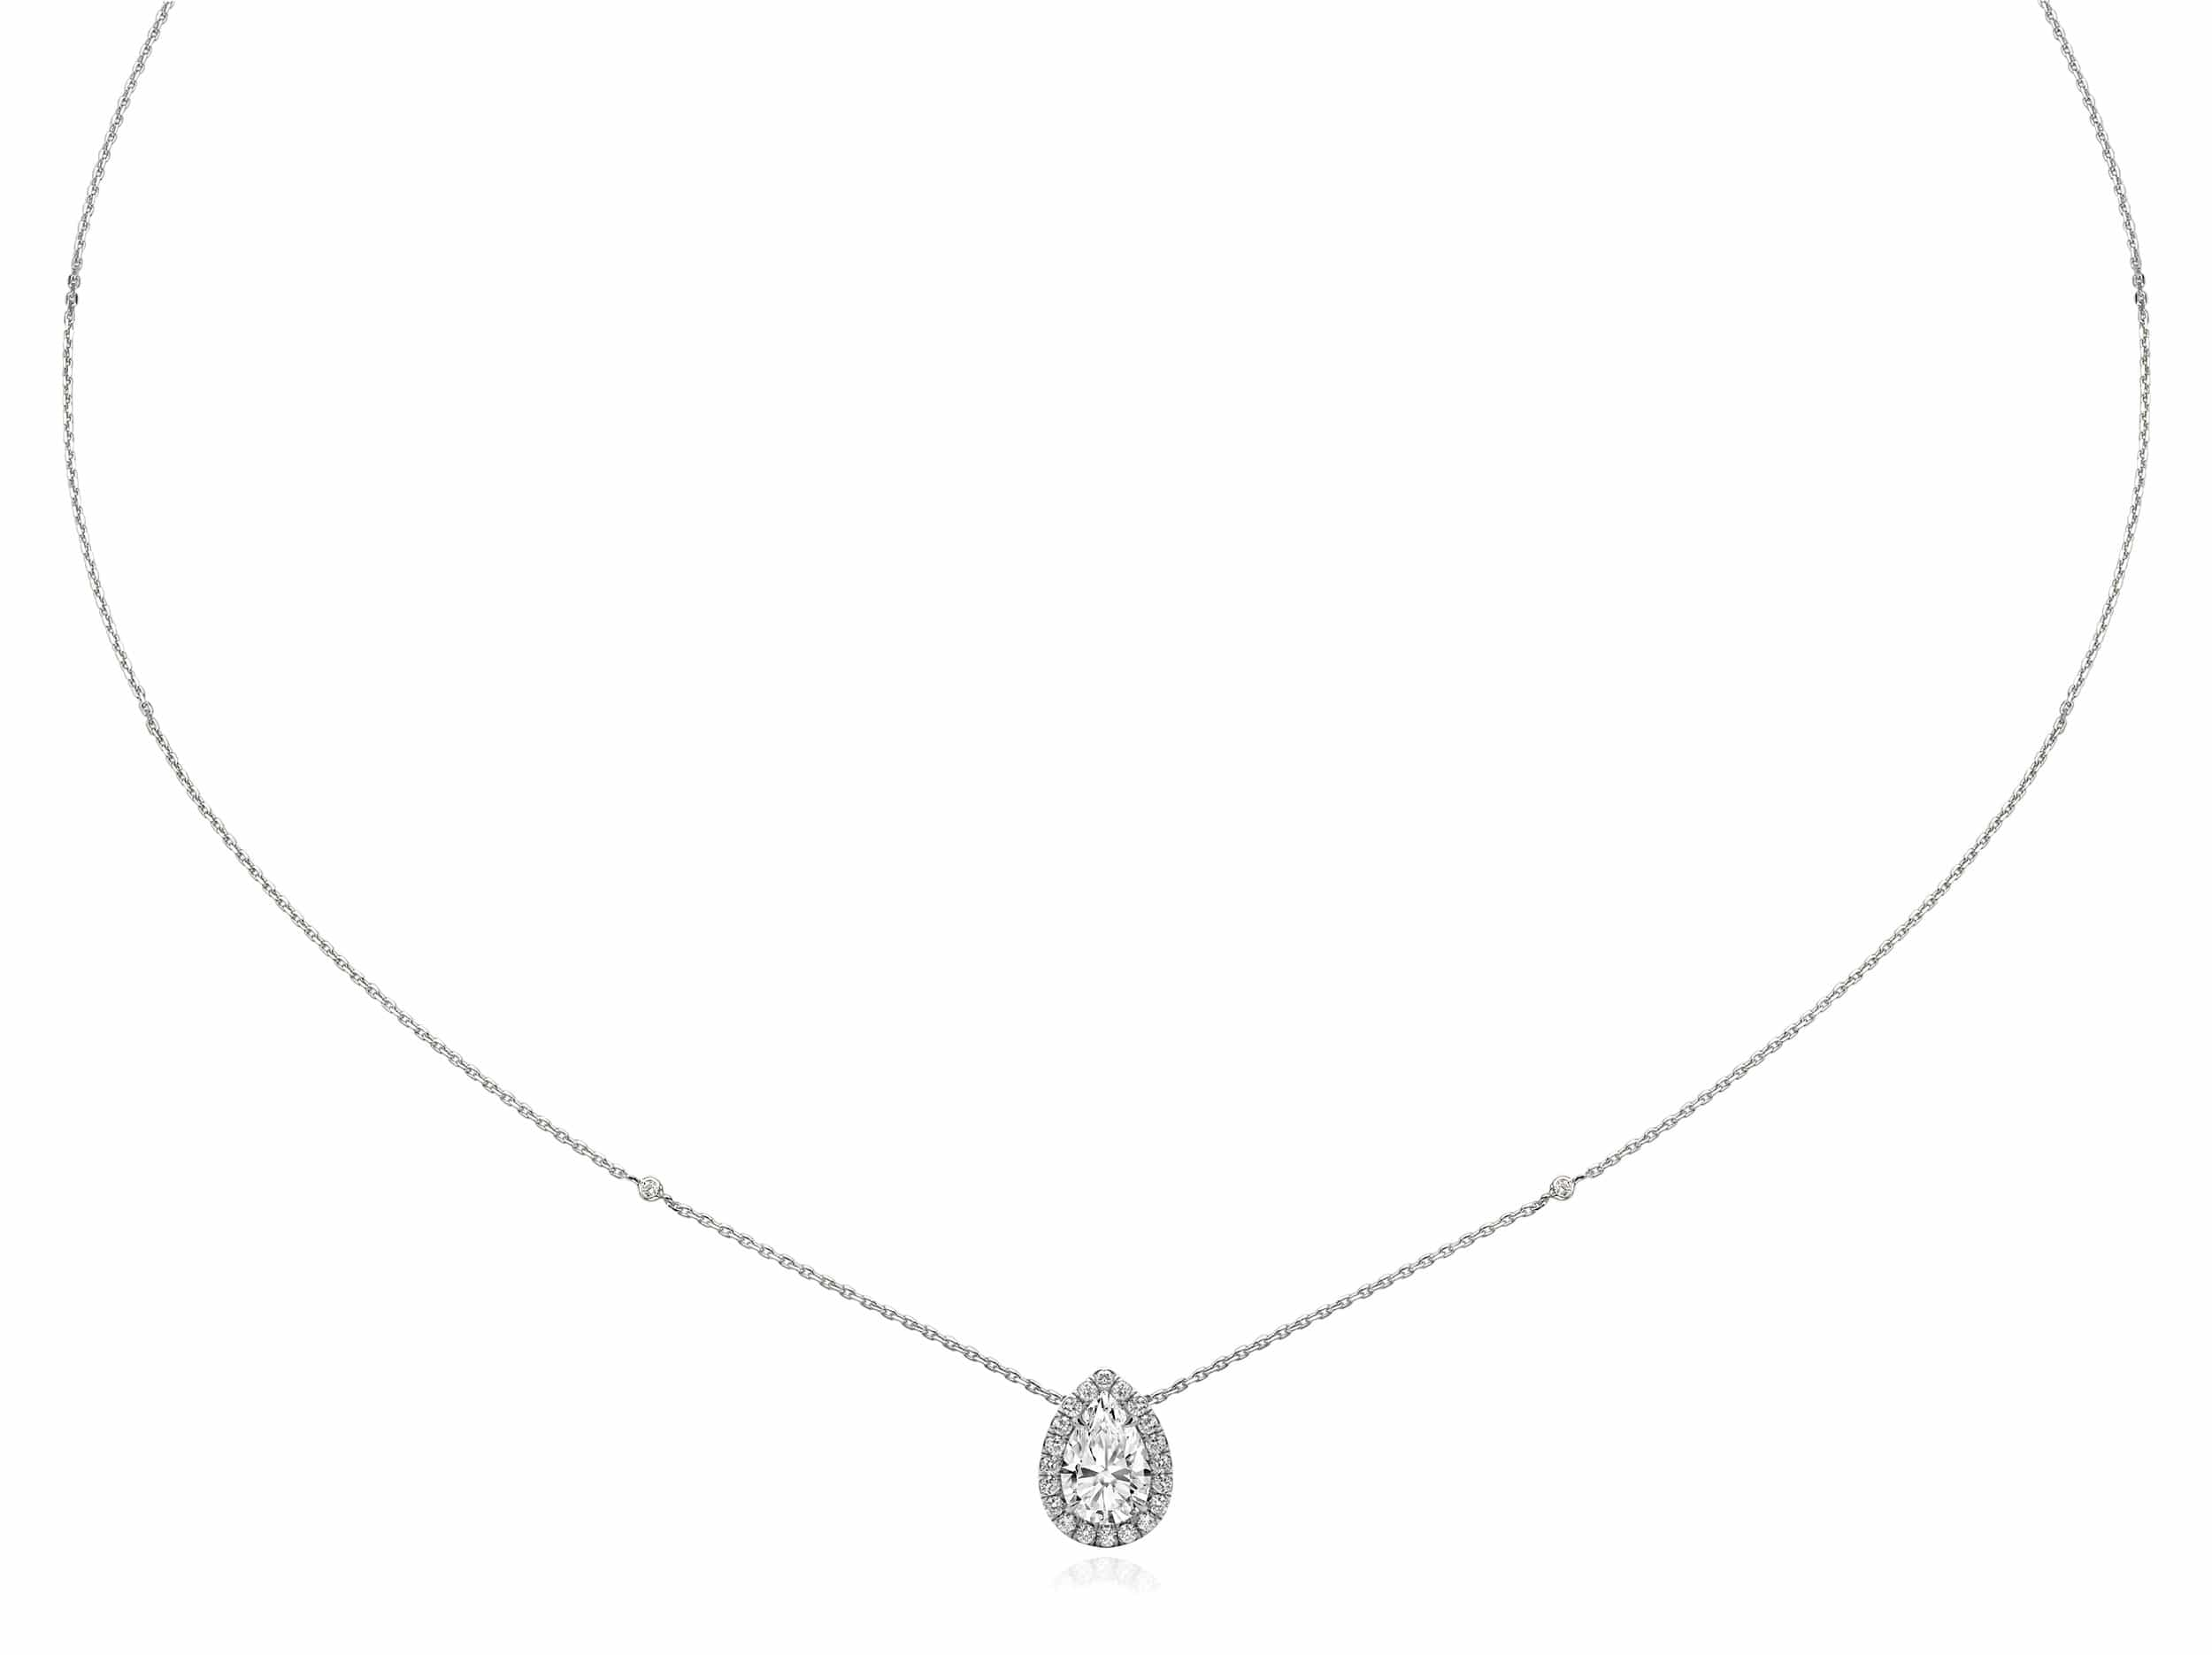 1.20 ct Pear Shaped Diamond Necklace Pendant